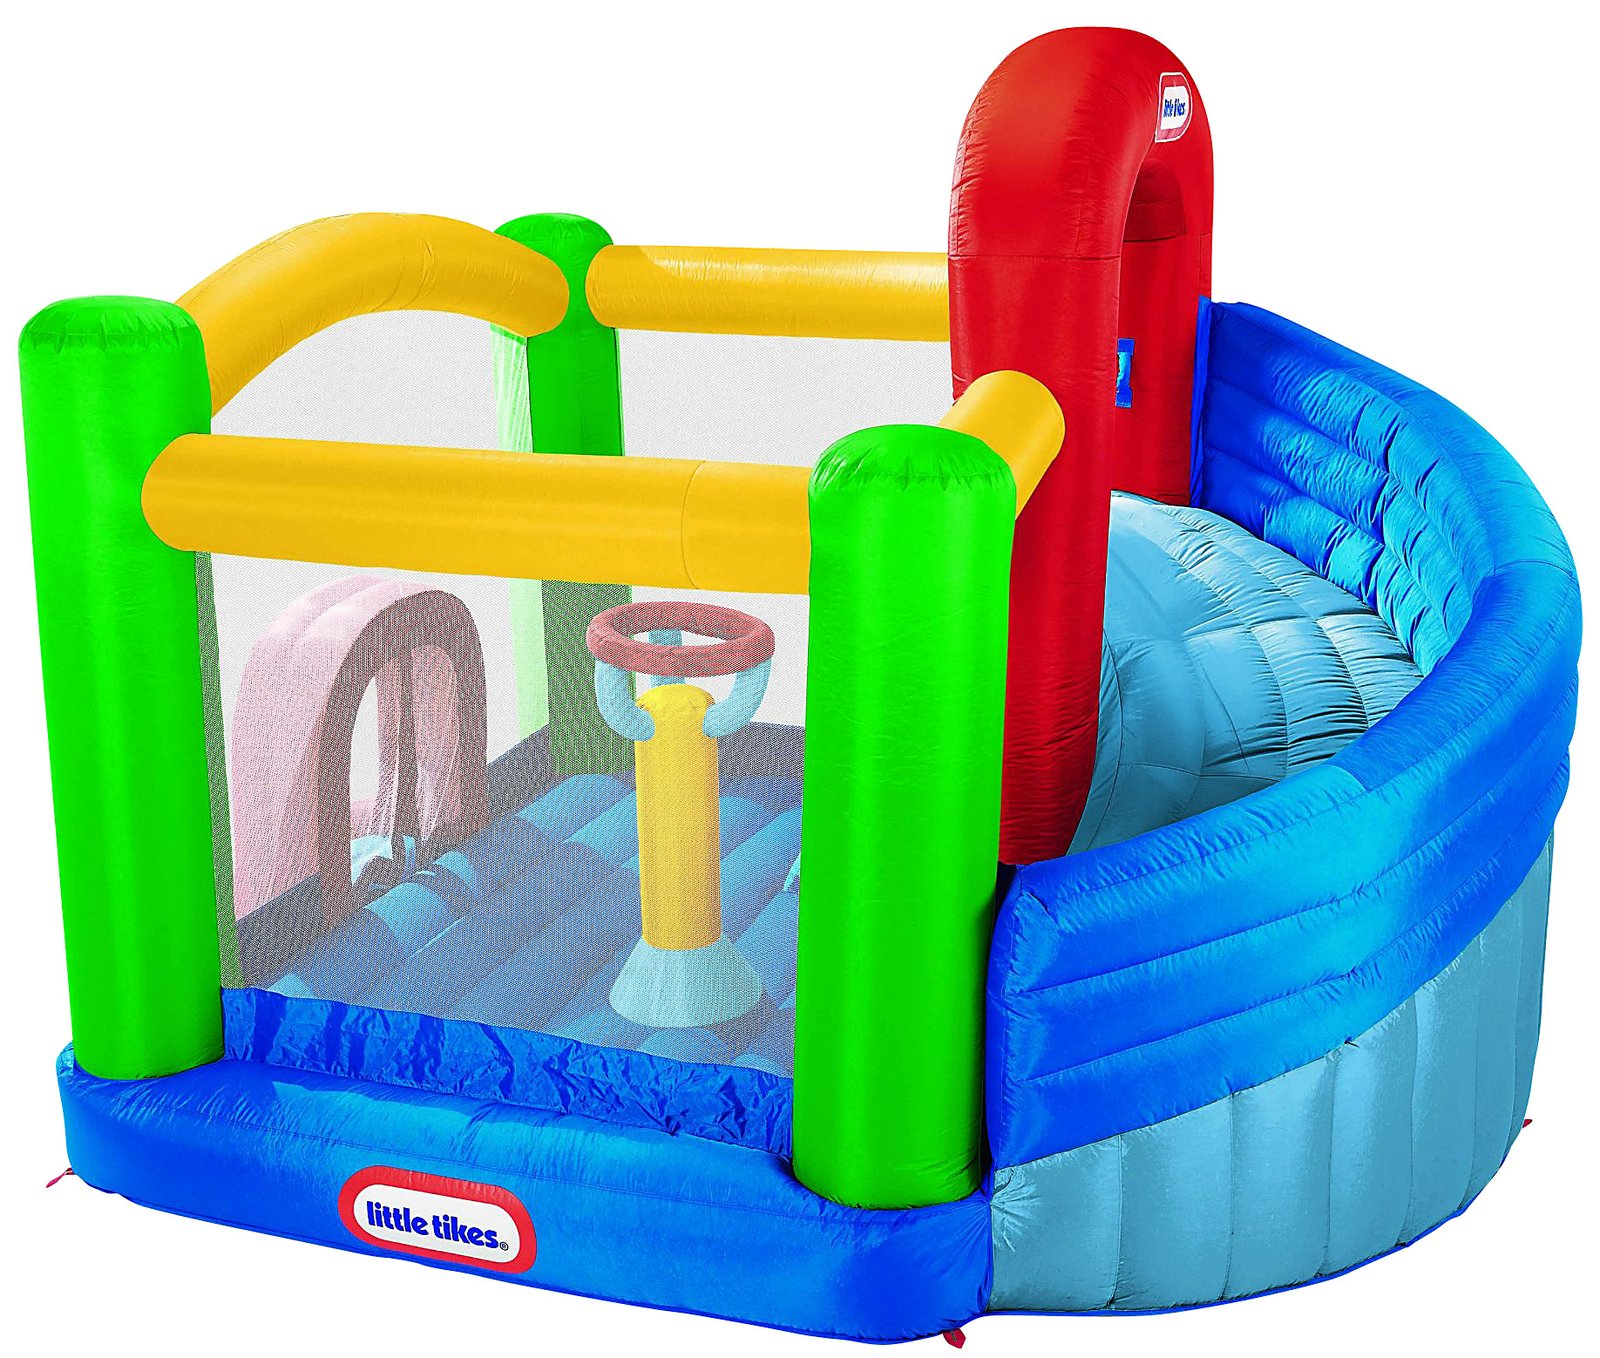 Fancy Little Tikes Bounce House Made Of Caoutchouc With Balcony Design For Play Yard Ideas